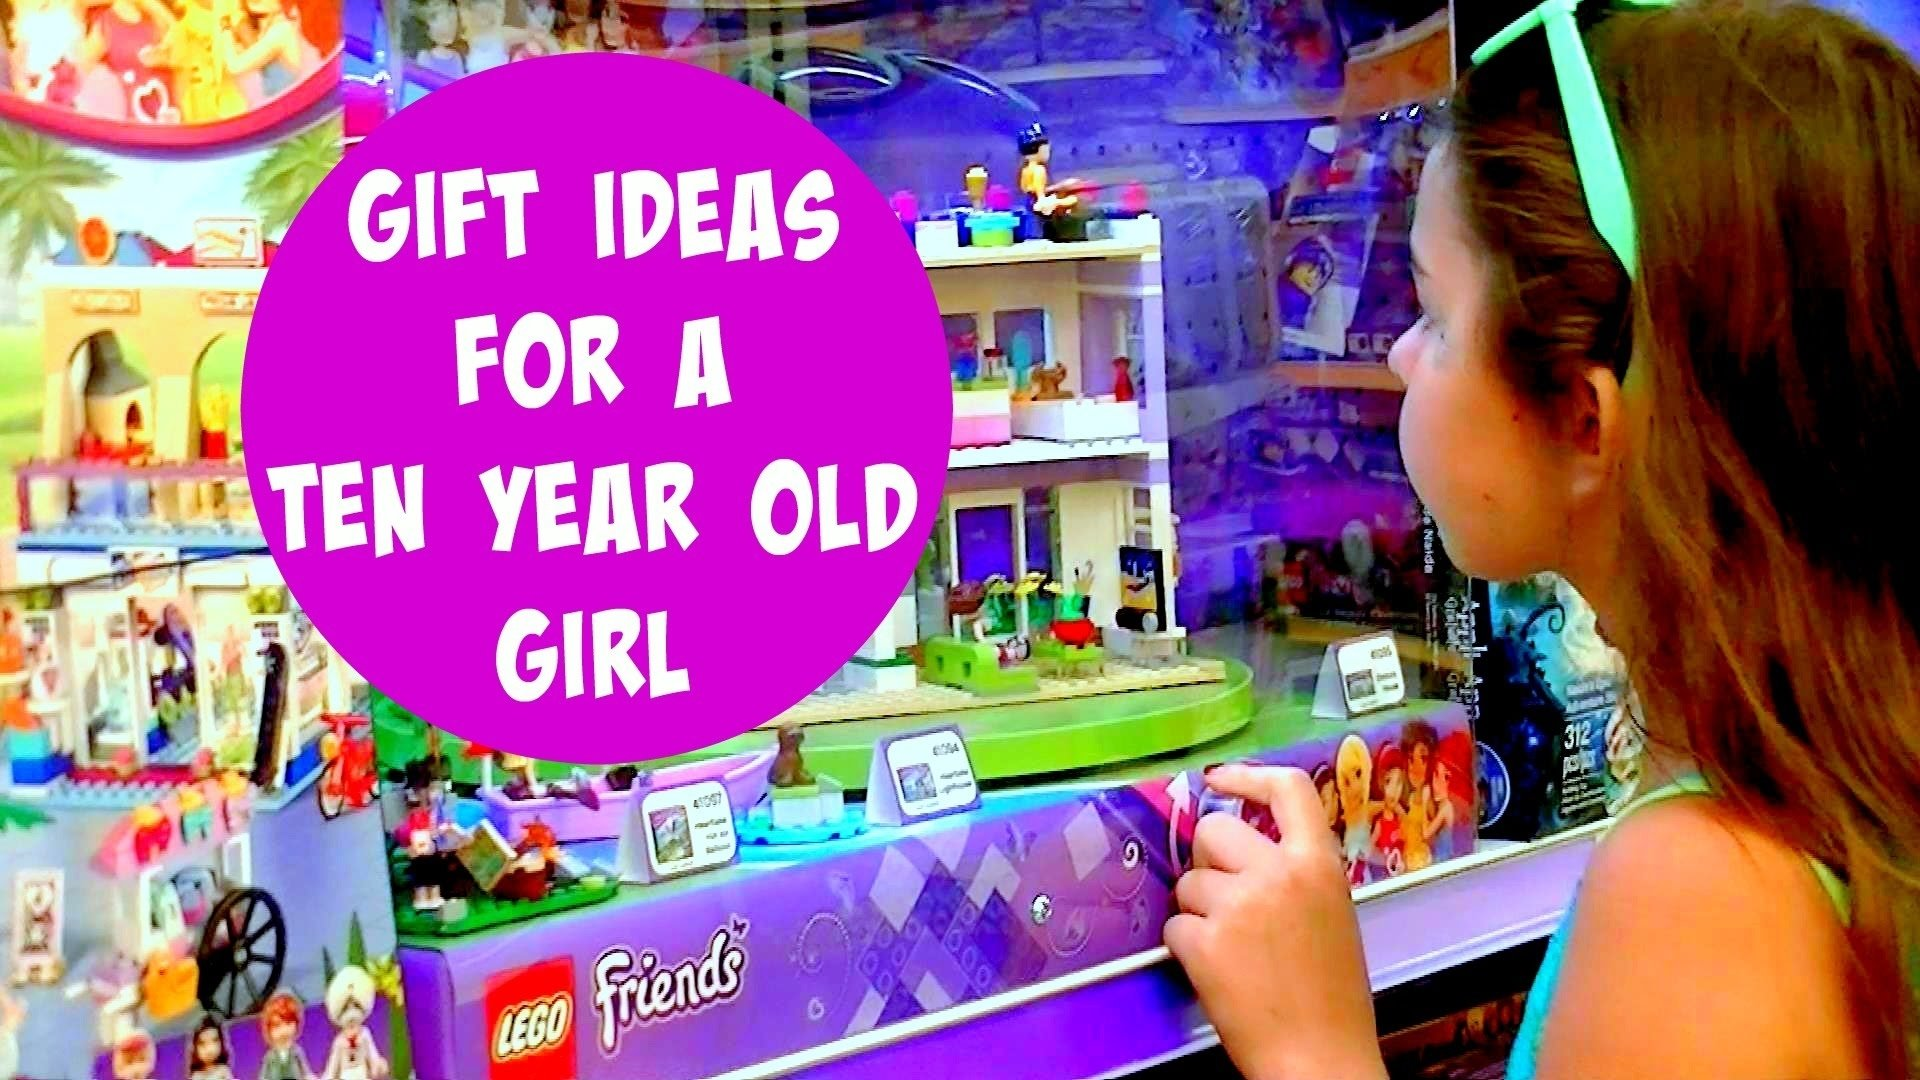 10 Wonderful Ideas For 10 Year Old Birthday birthday gift ideas for a 10 year old girl under 30 youtube 8 2020